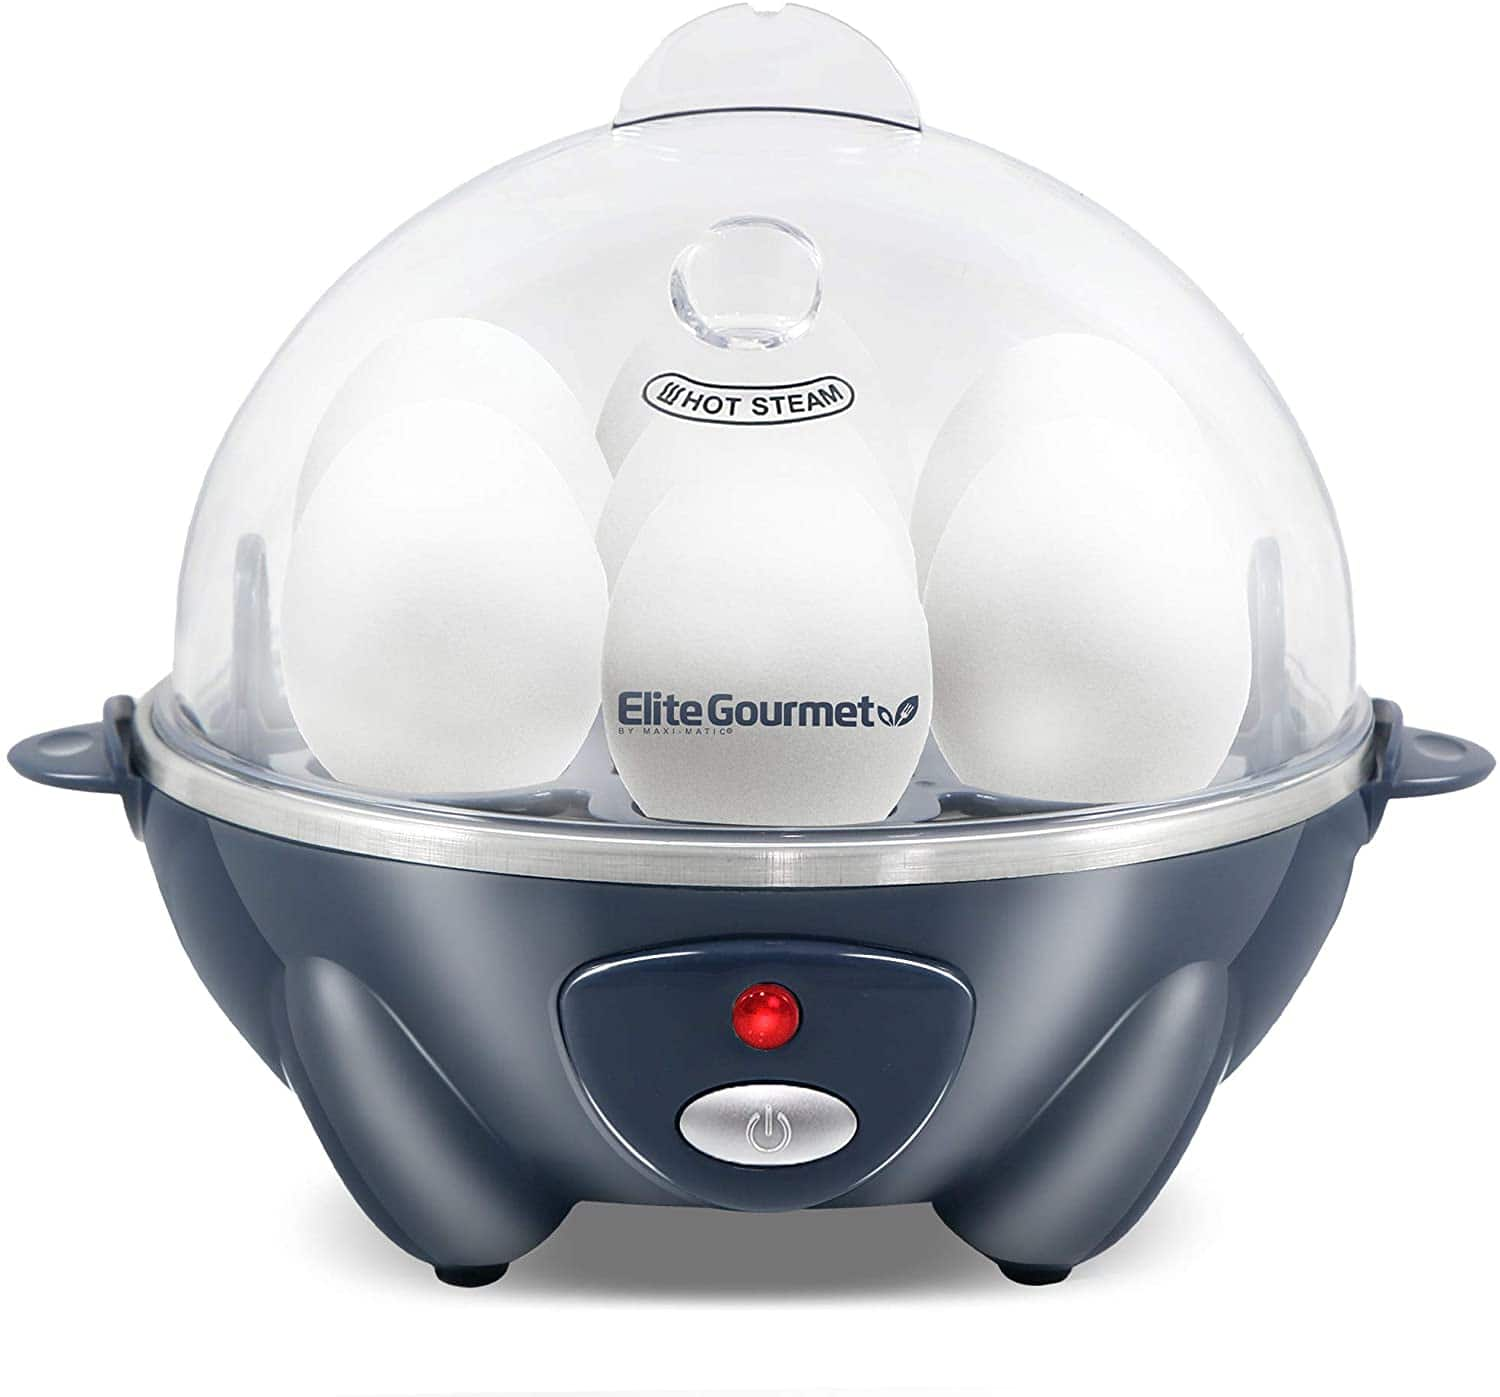 Elite Gourmet 7-Egg Easy Electric Poacher (Grey Blue or Mint) $12.79 + Free Shipping w/ Prime or $25+